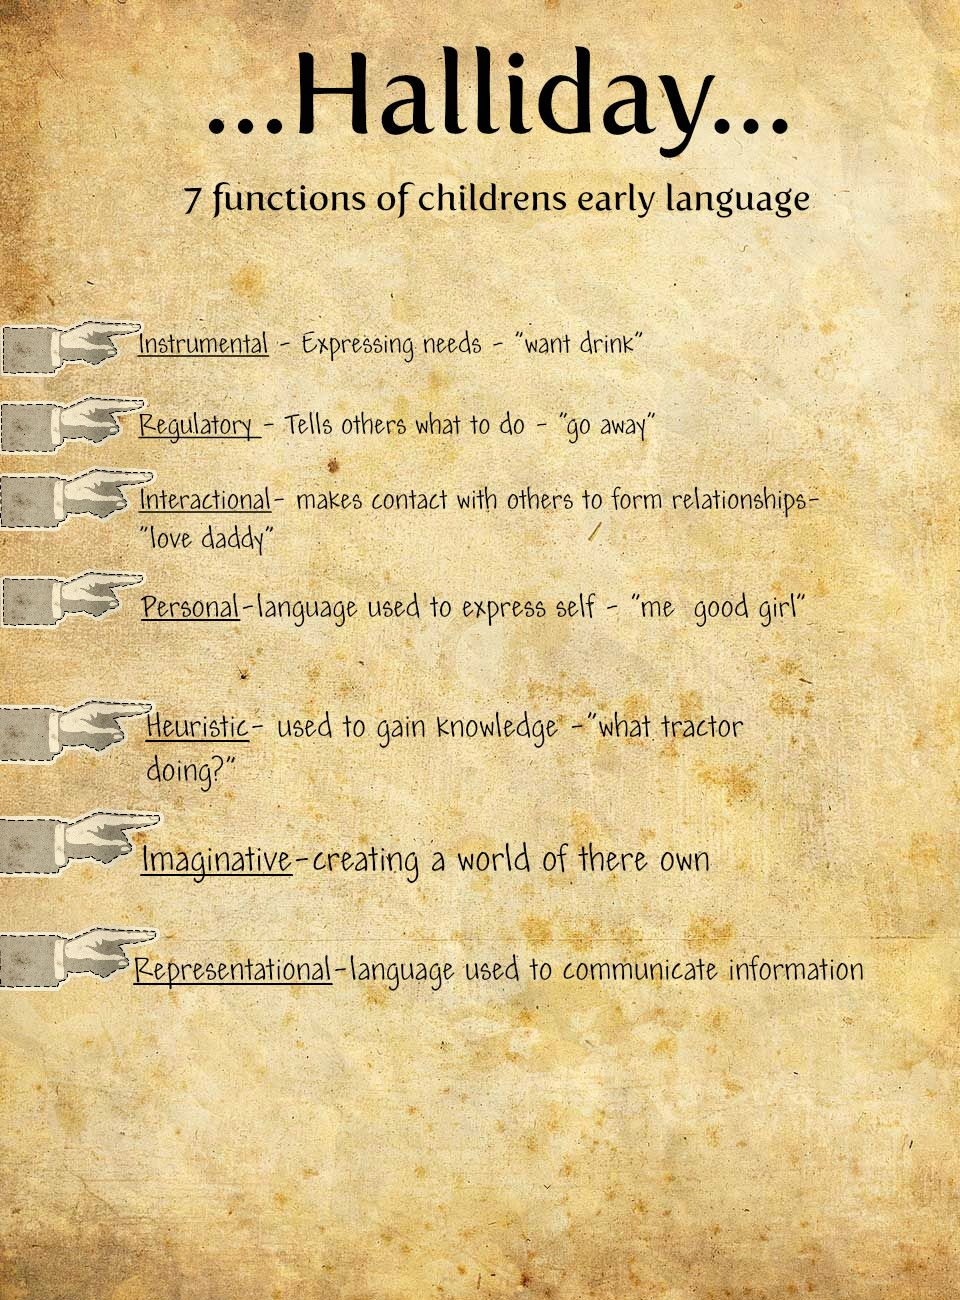 characteristics of language development Stages of language development everything you need to know we've compiled information about the stages of language development from many reliable sources to make a complete, but simple, list of what your child is expected to do at each age.